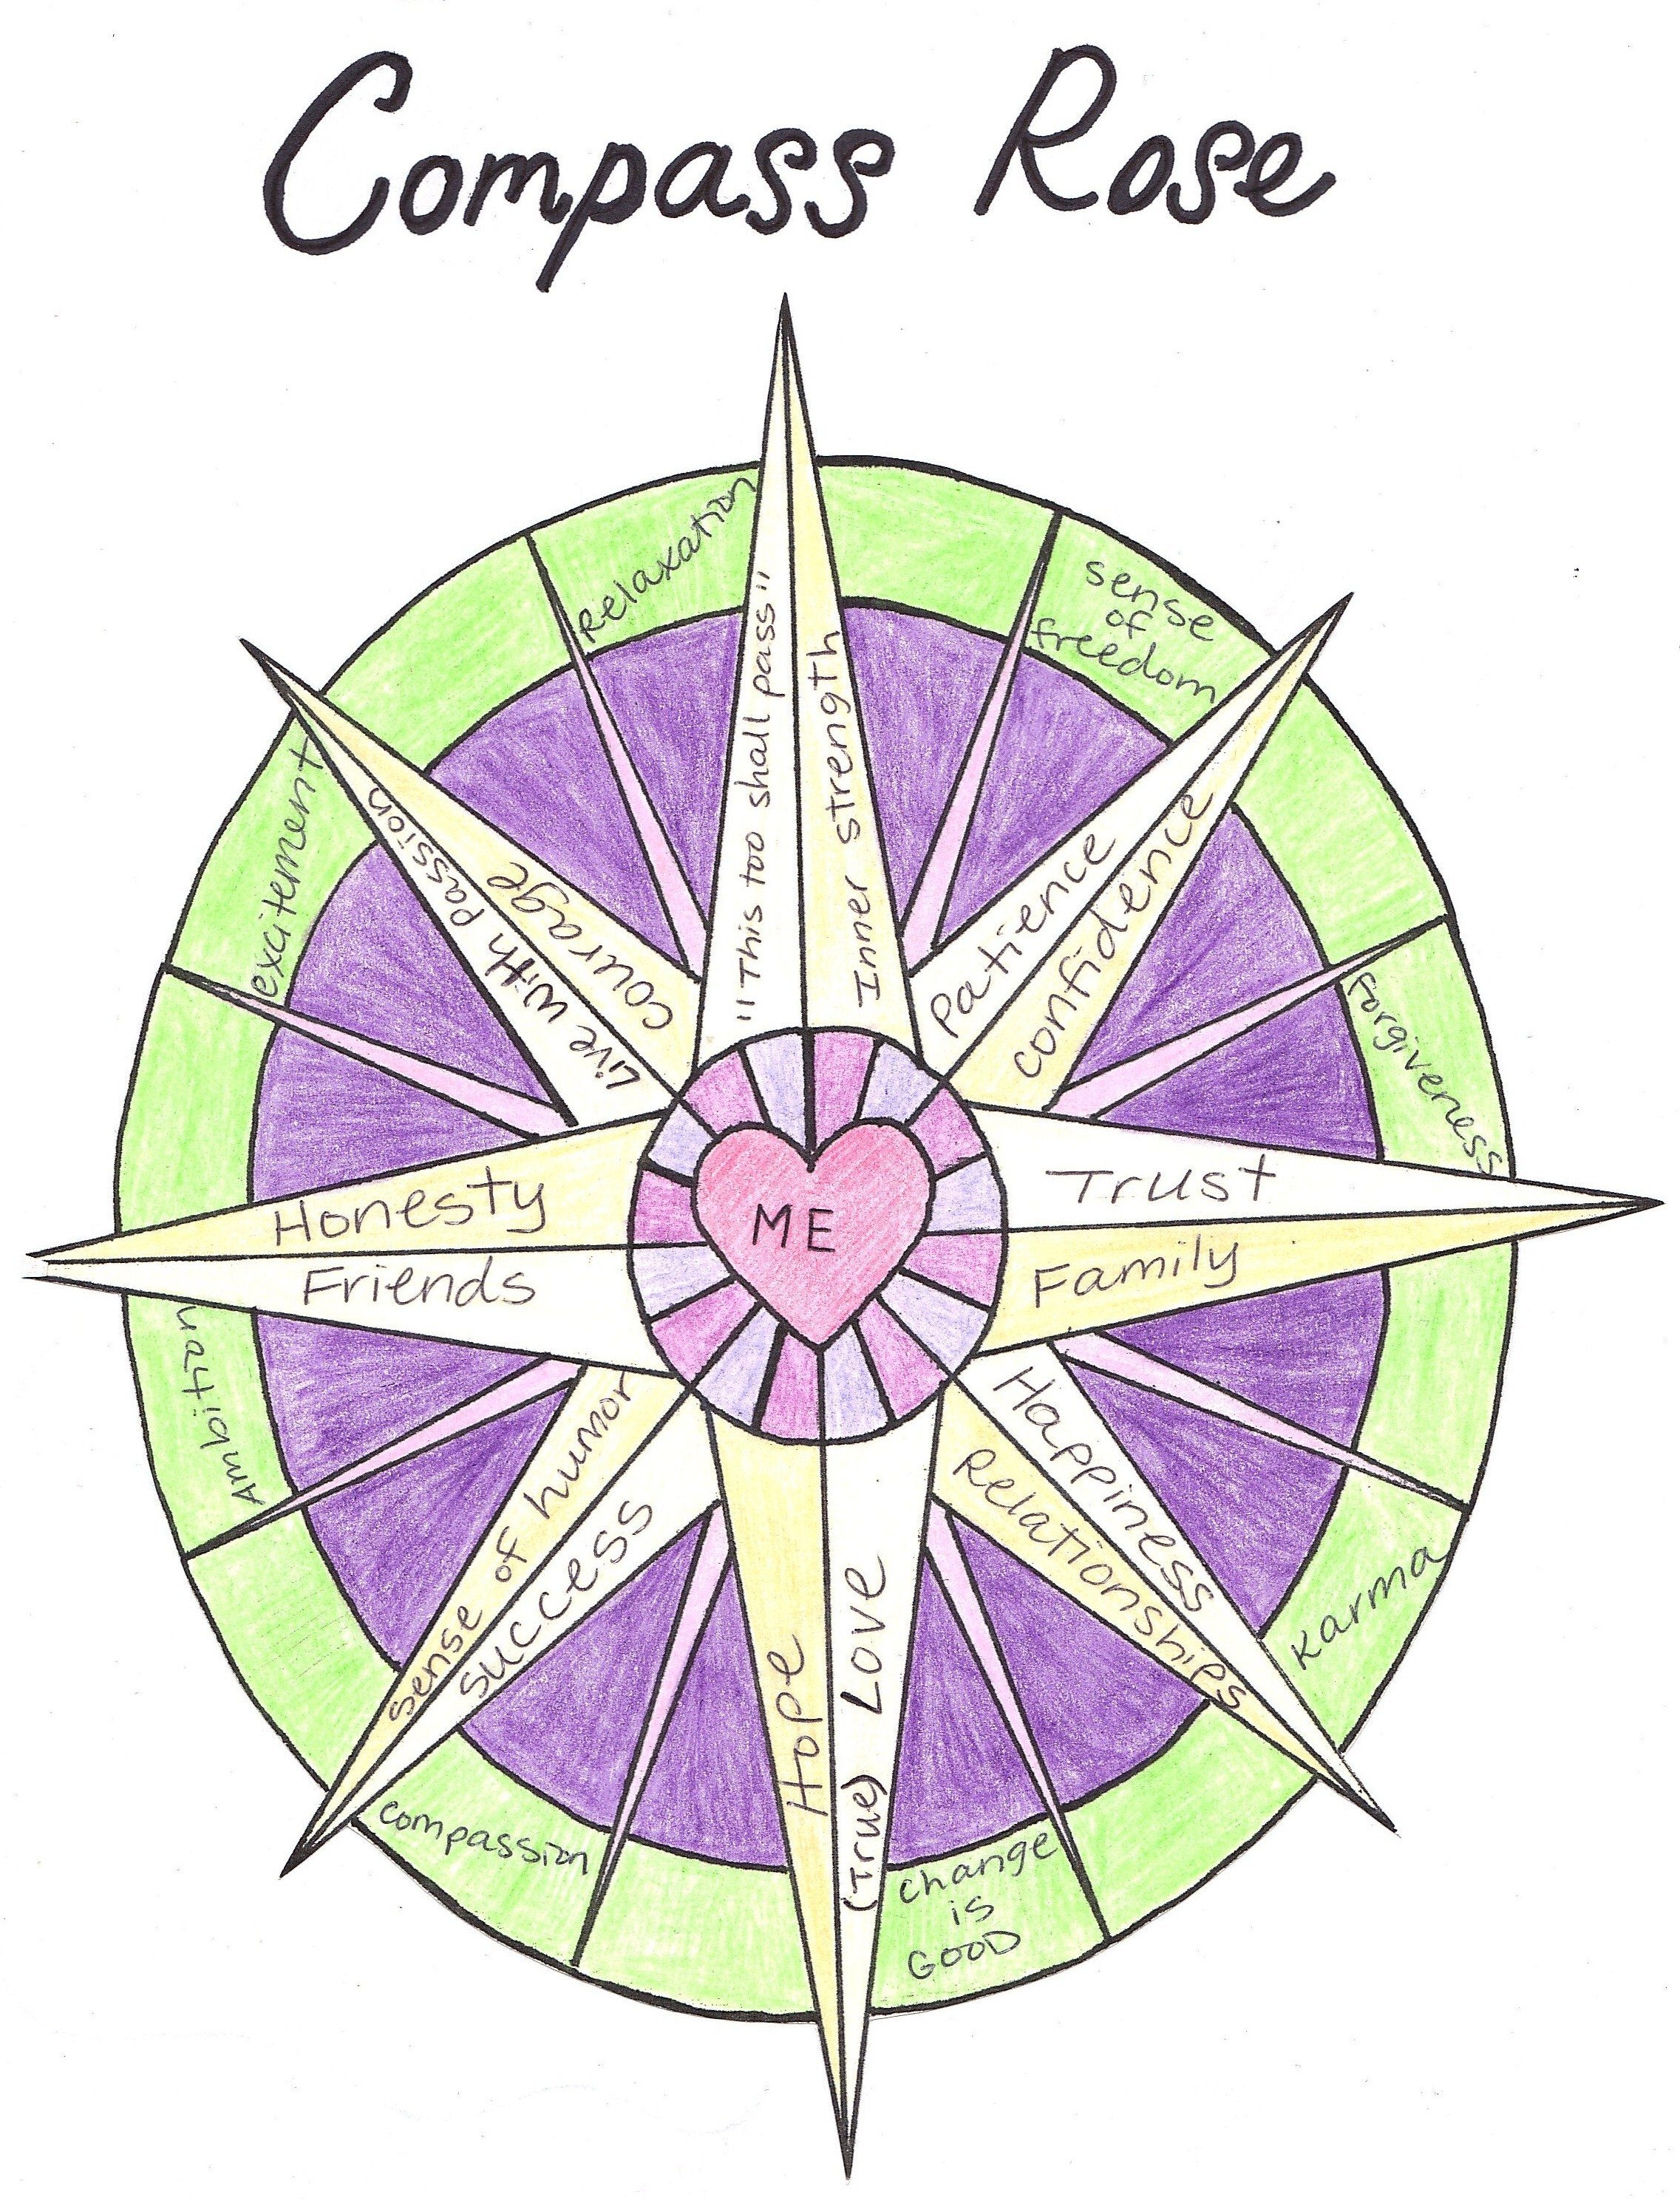 Personal Compass Roses